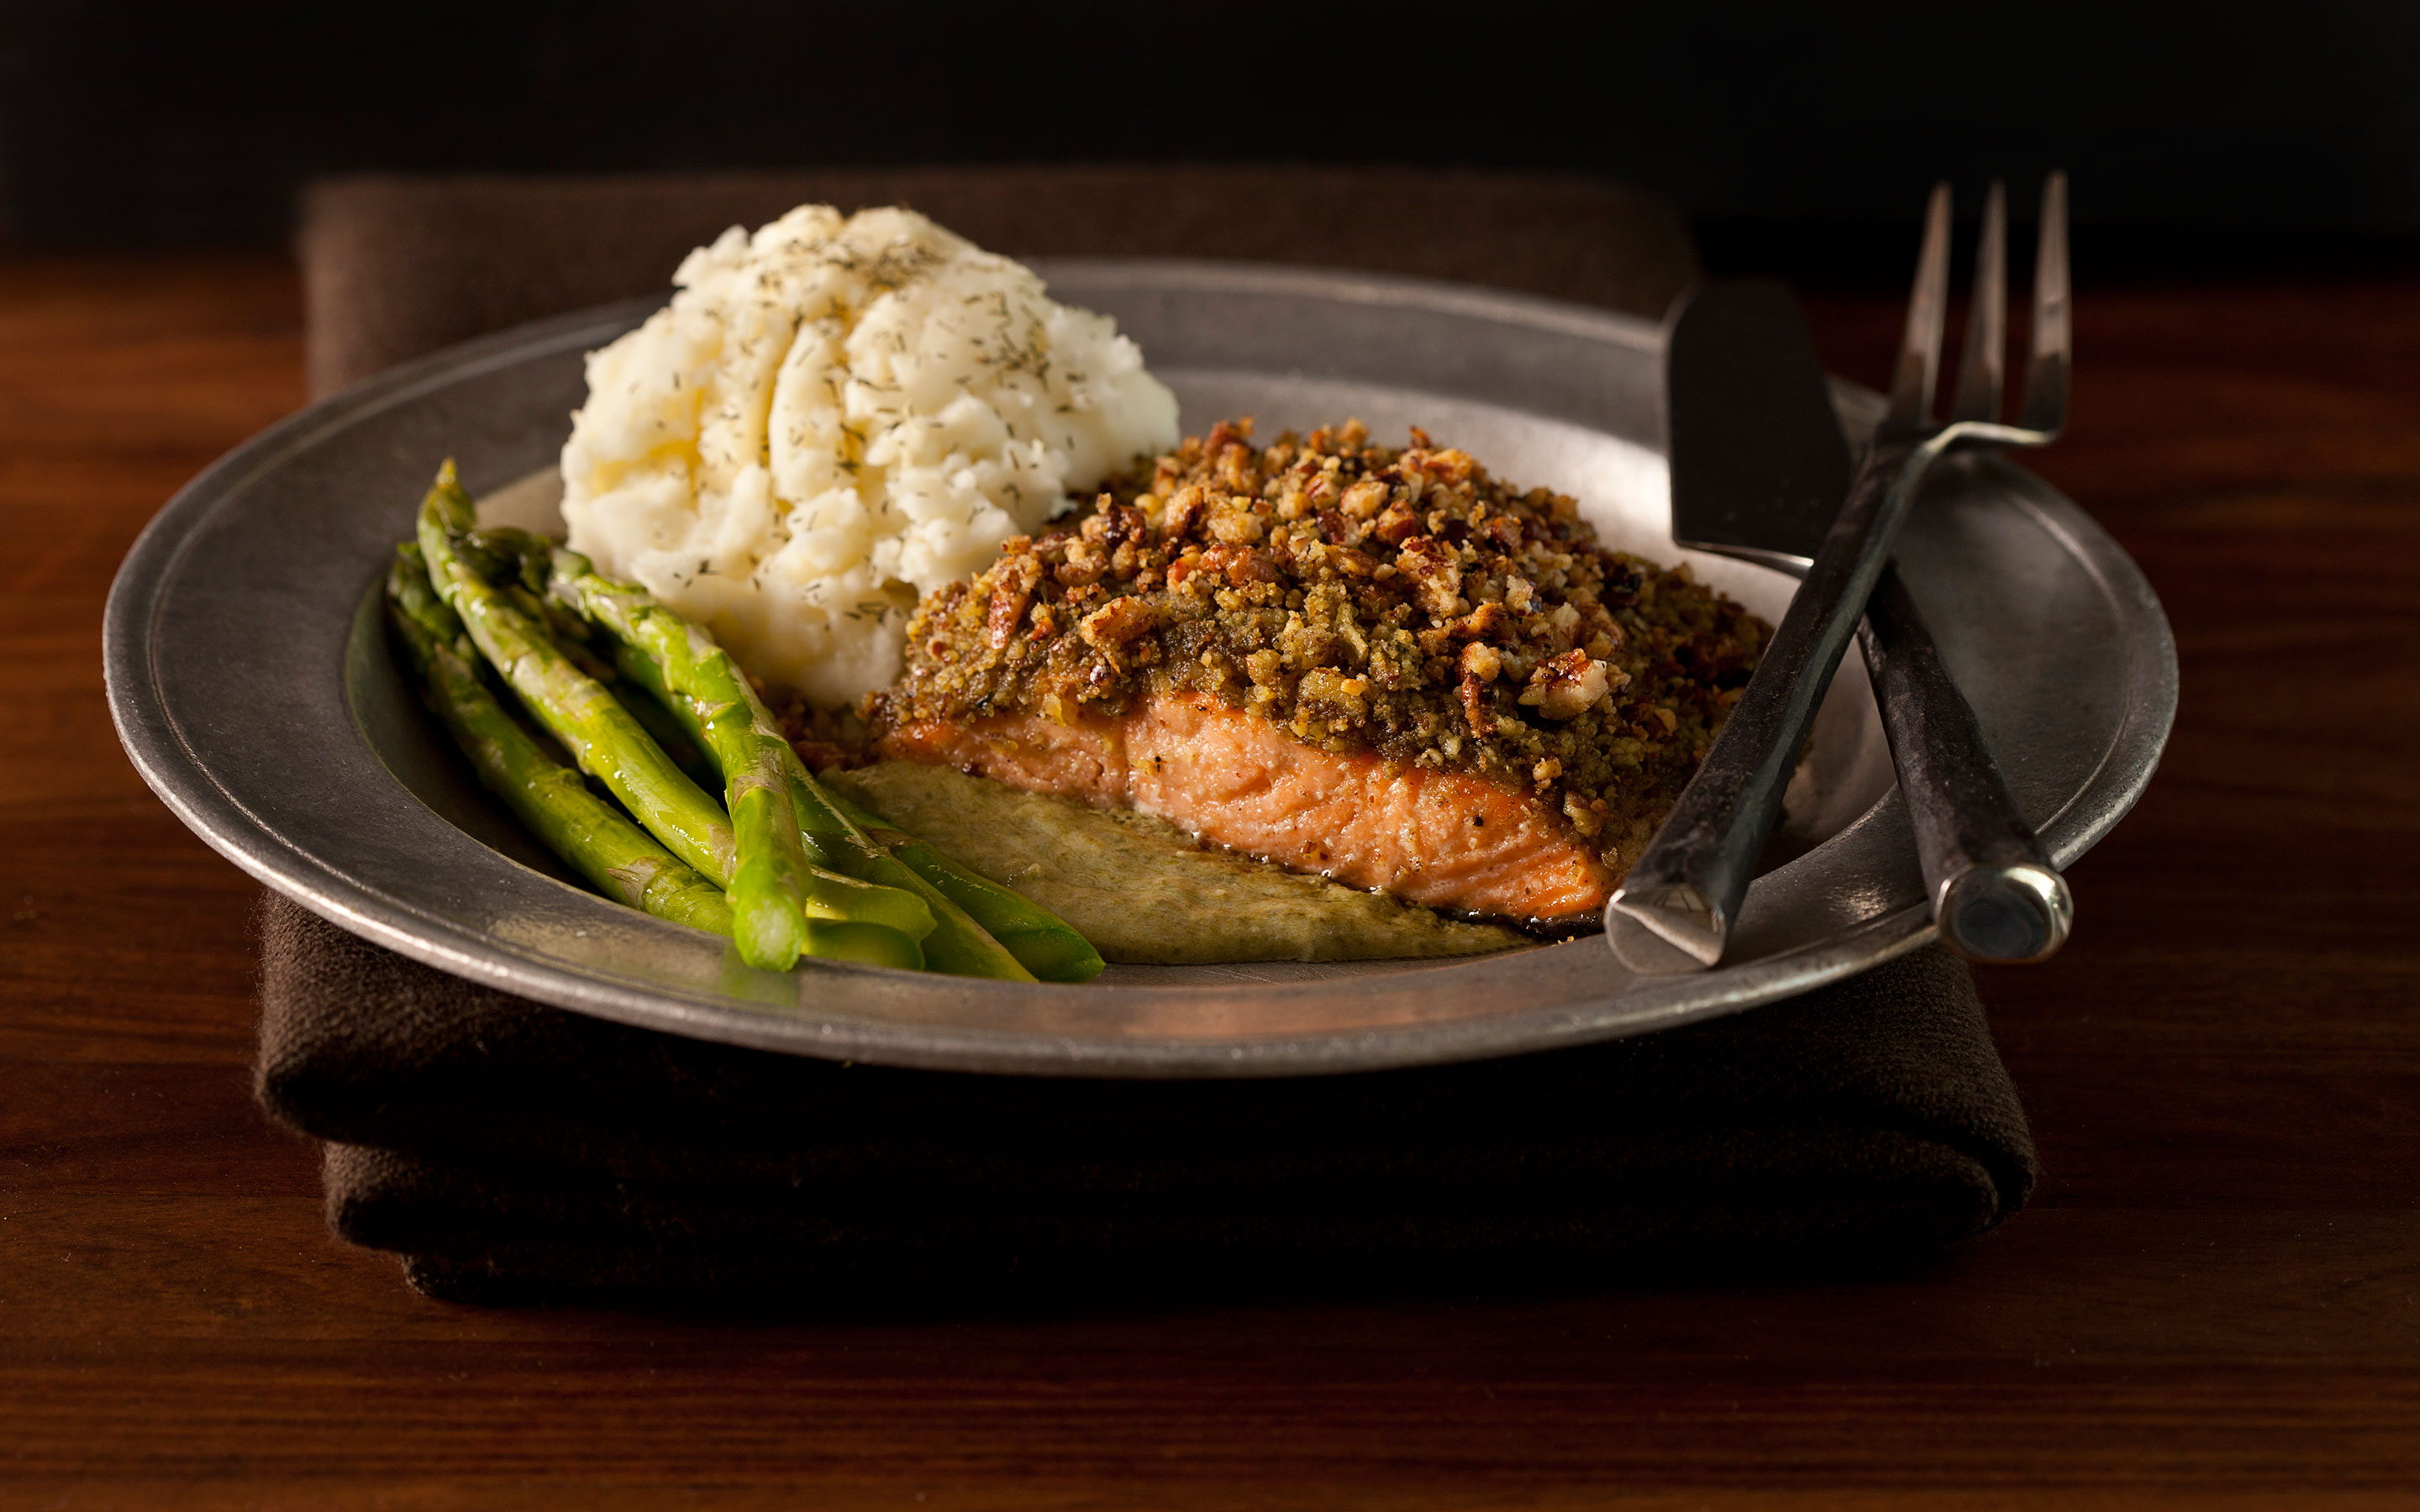 Pistachio crusted salmon on metal plate w/ mashed potatoes & asparagus